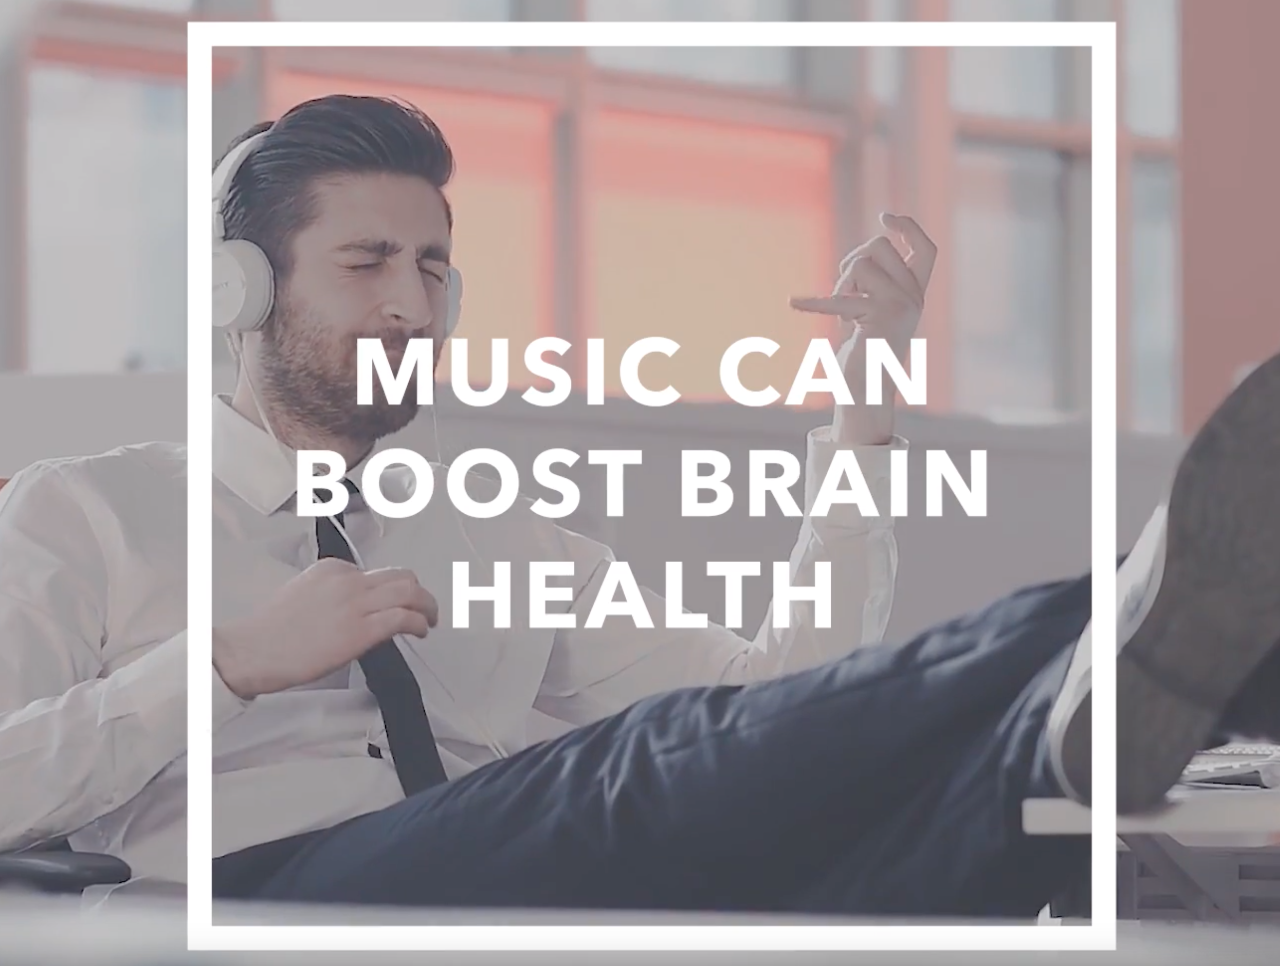 Music can boost brain health